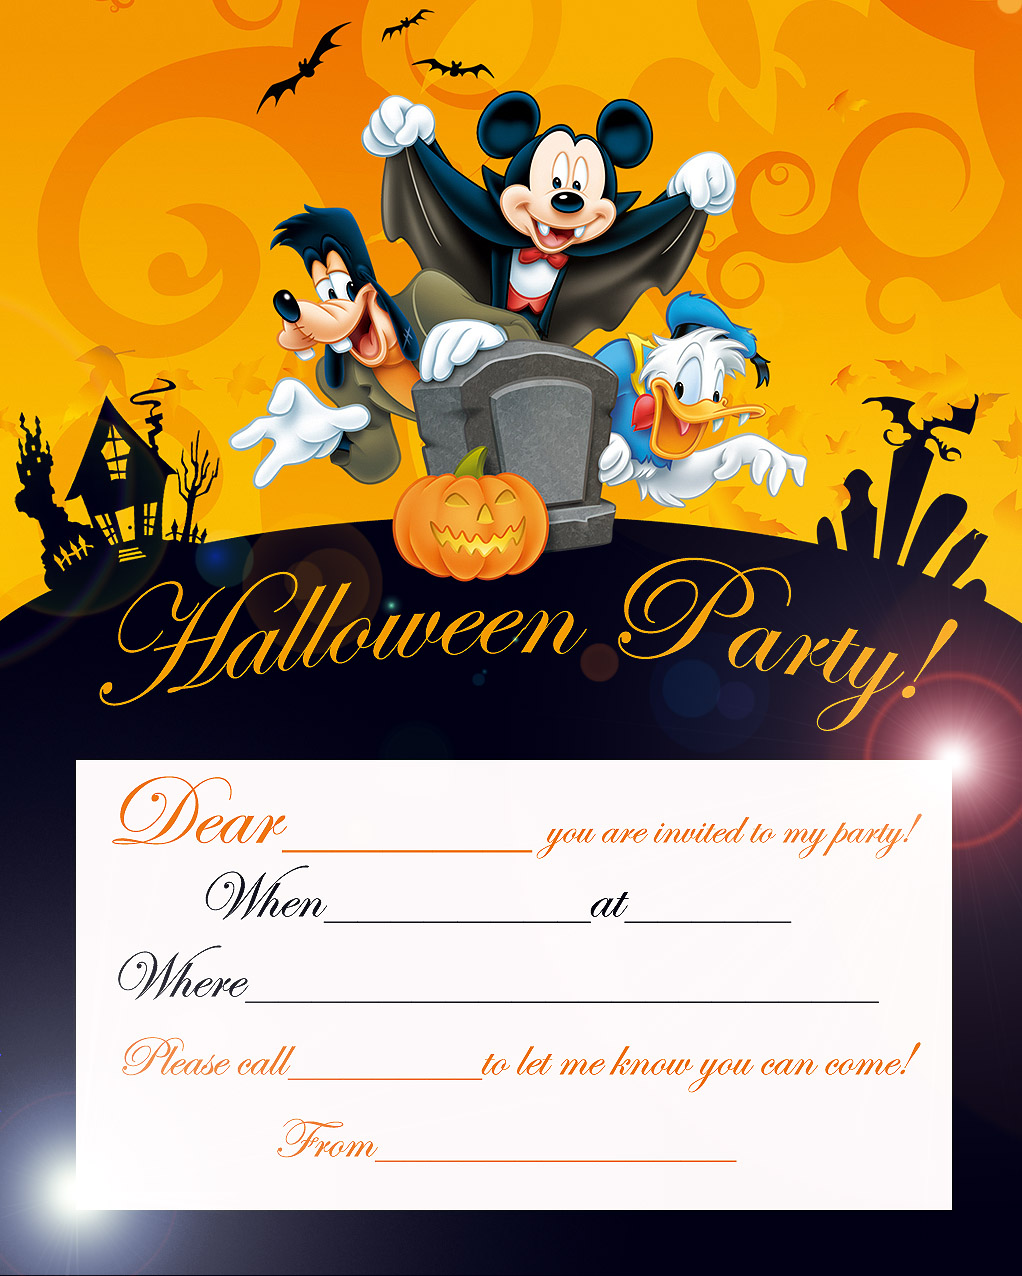 Here Another Disney Invitation Card Maybe Youre Interested In